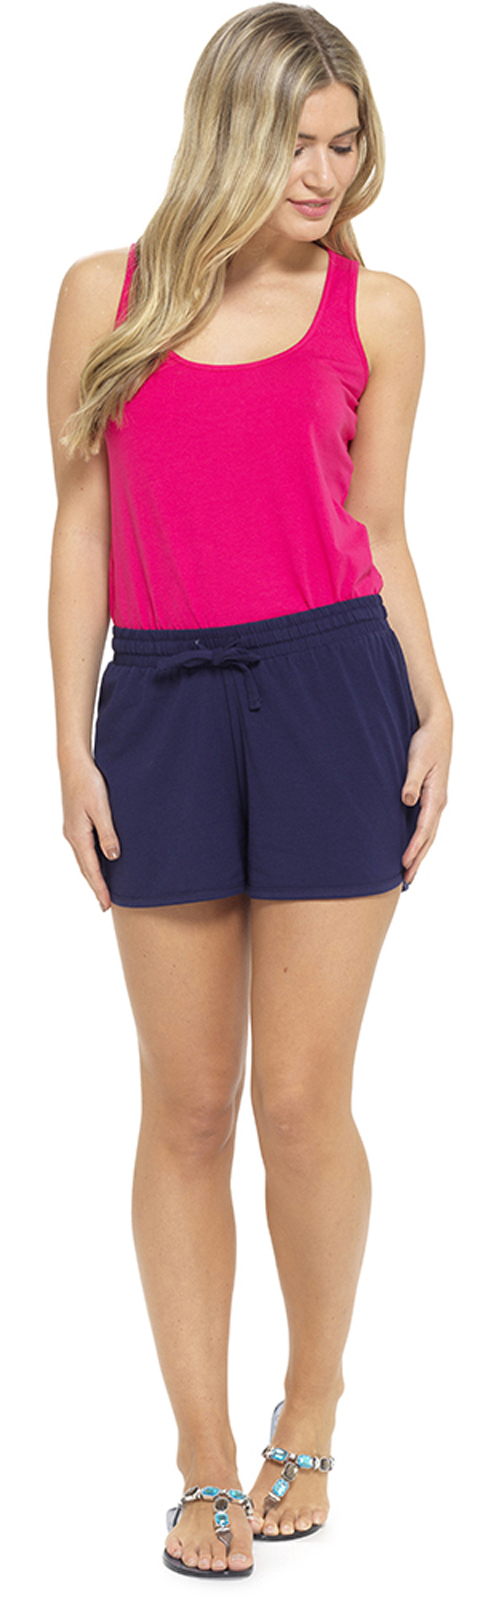 Free shipping & returns on shorts for women at fefdinterested.gq Whether you are looking for high waisted, cargo, bermuda, cutoffs, denim, or more, we have you covered in the latest styles & colors.